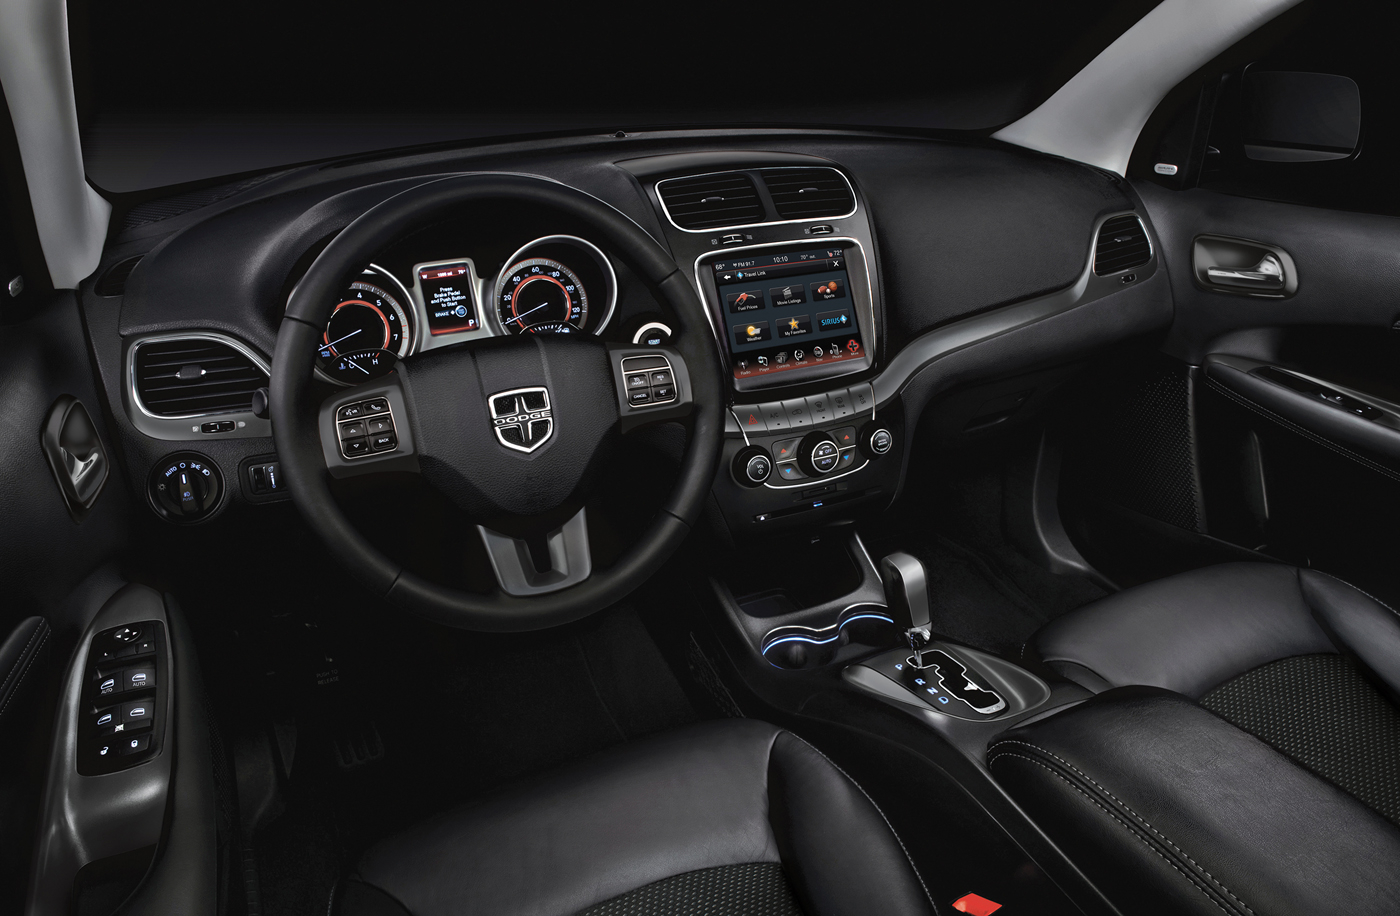 2016 Dodge Journey Crossroad Plus interior